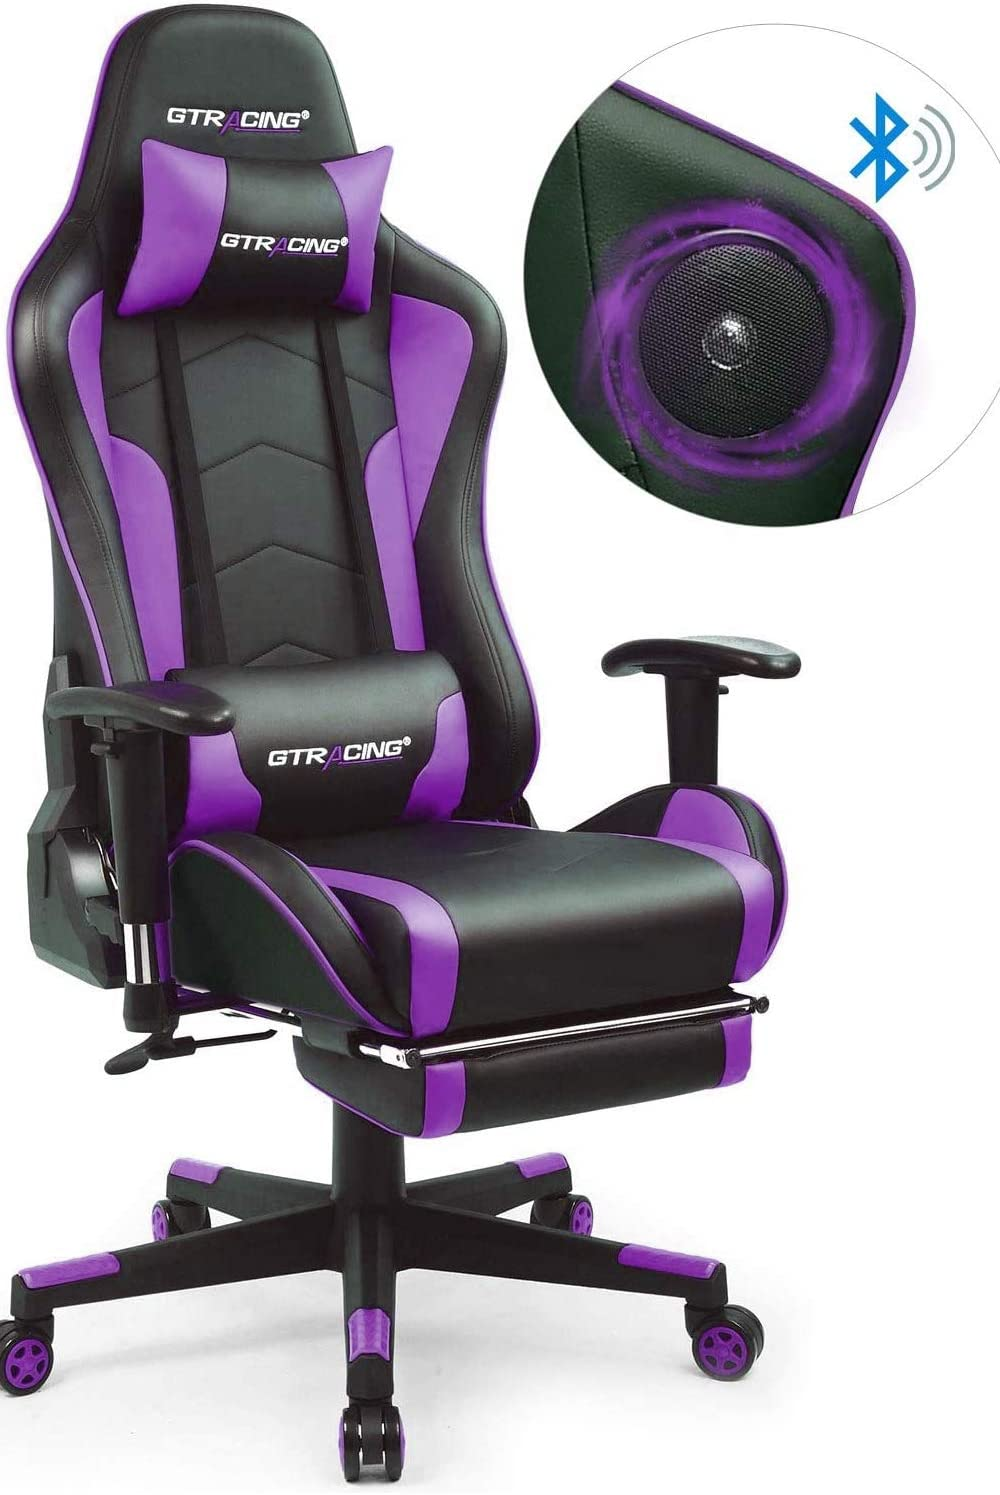 GTRACING Music Gaming Chair with Footrest and Bluetooth Speakers Video Game Chair Heavy Duty Computer Office Desk Chair GT890MF Red (Purple)